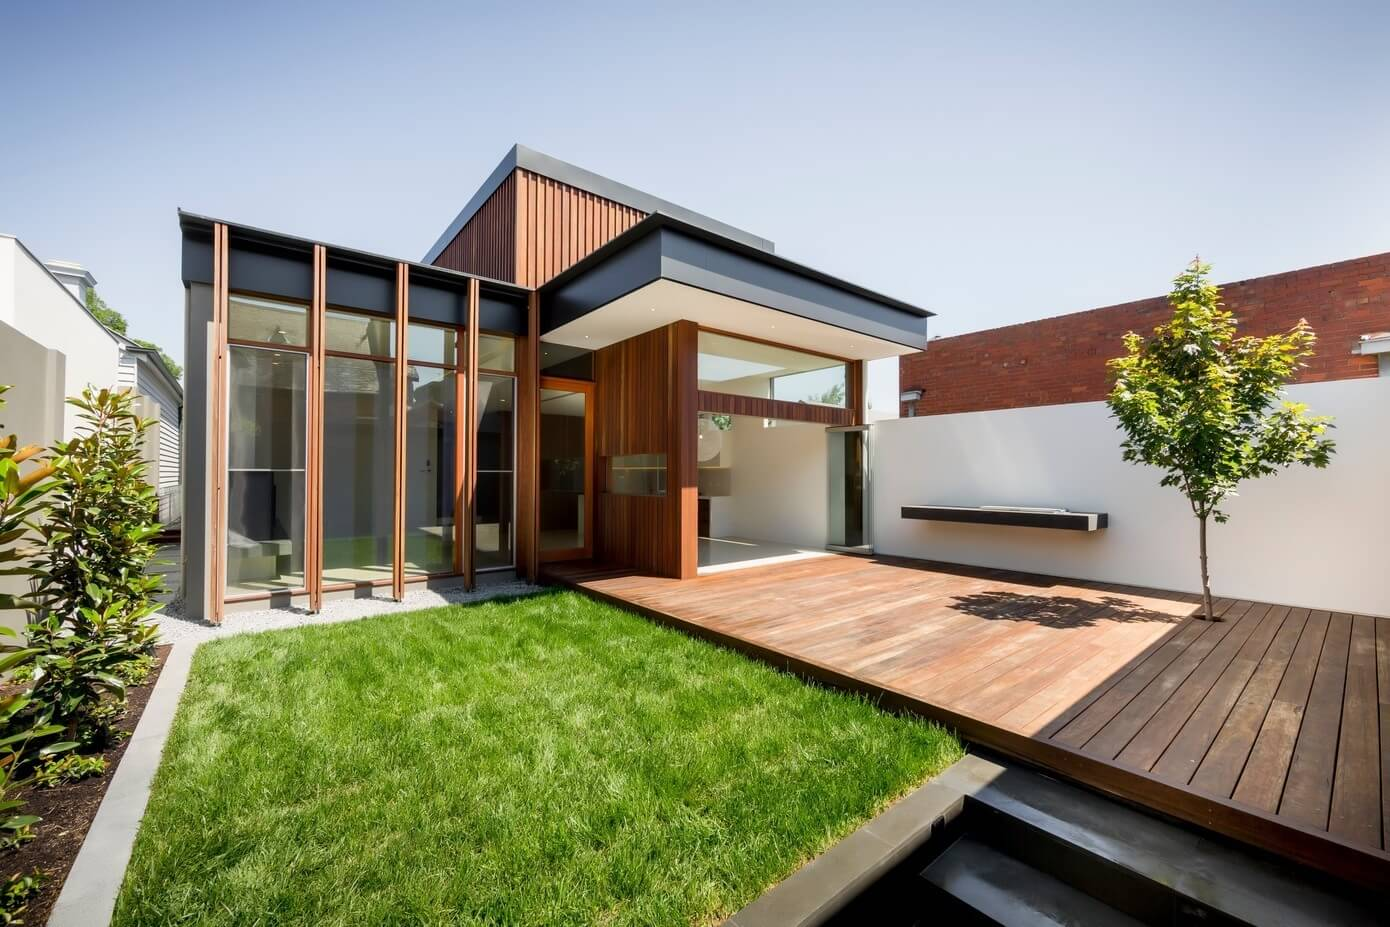 armadale-house-mitsuori-architects-01